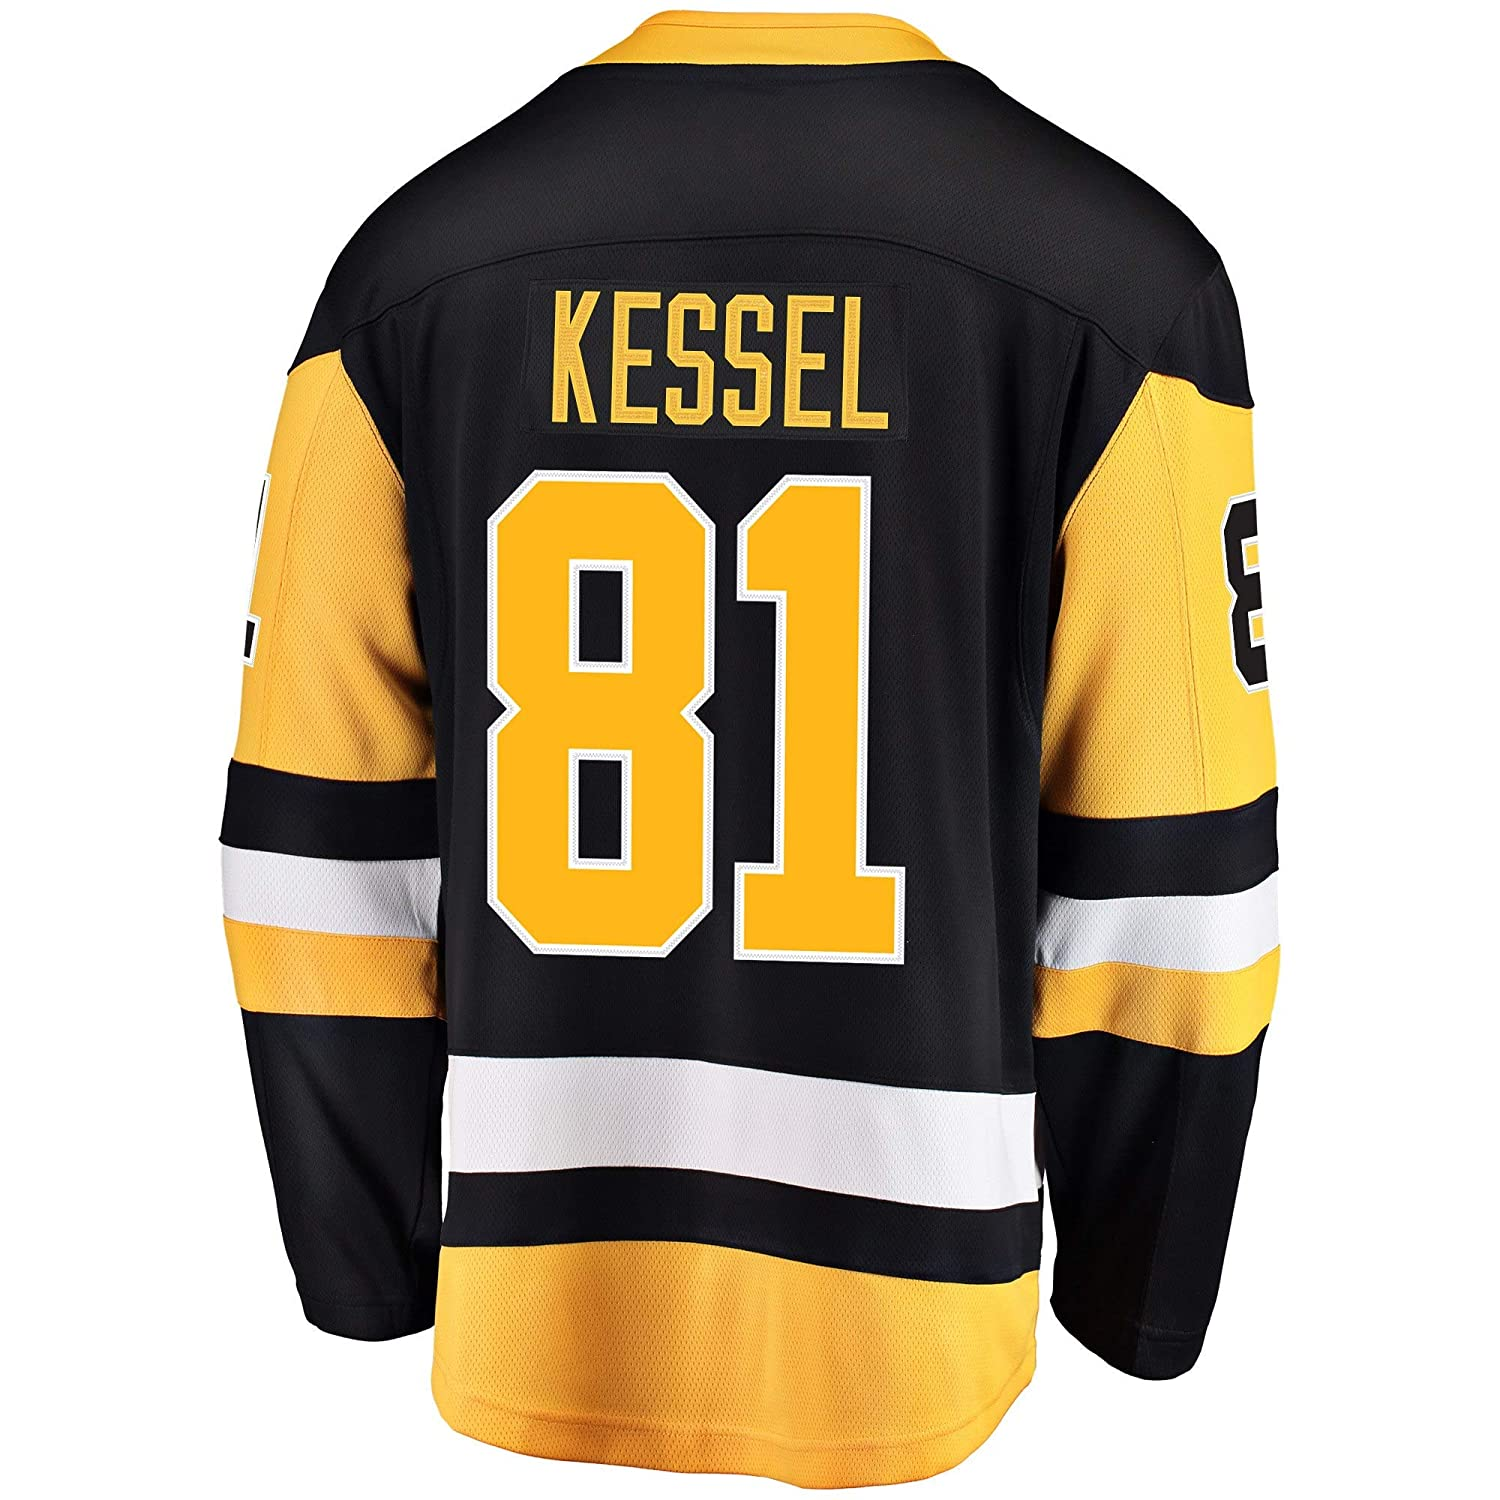 cheap for discount ace8b 612d8 Amazon.com: Outerstuff Phil Kessel Pittsburgh Penguin #81 ...